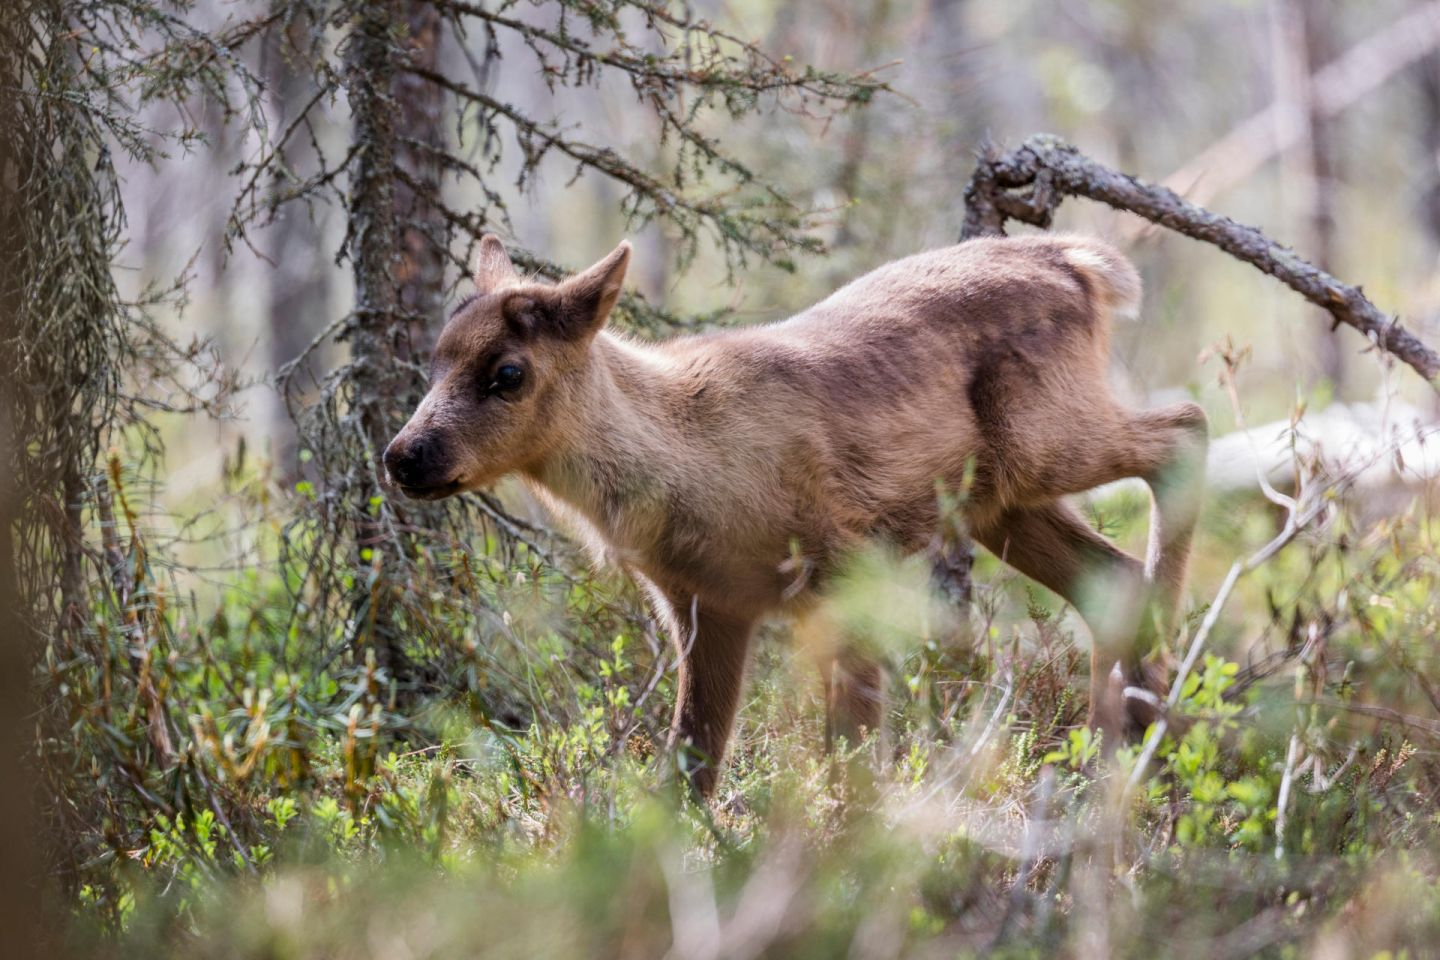 Ailo runs through the forest in Posio, Lapland